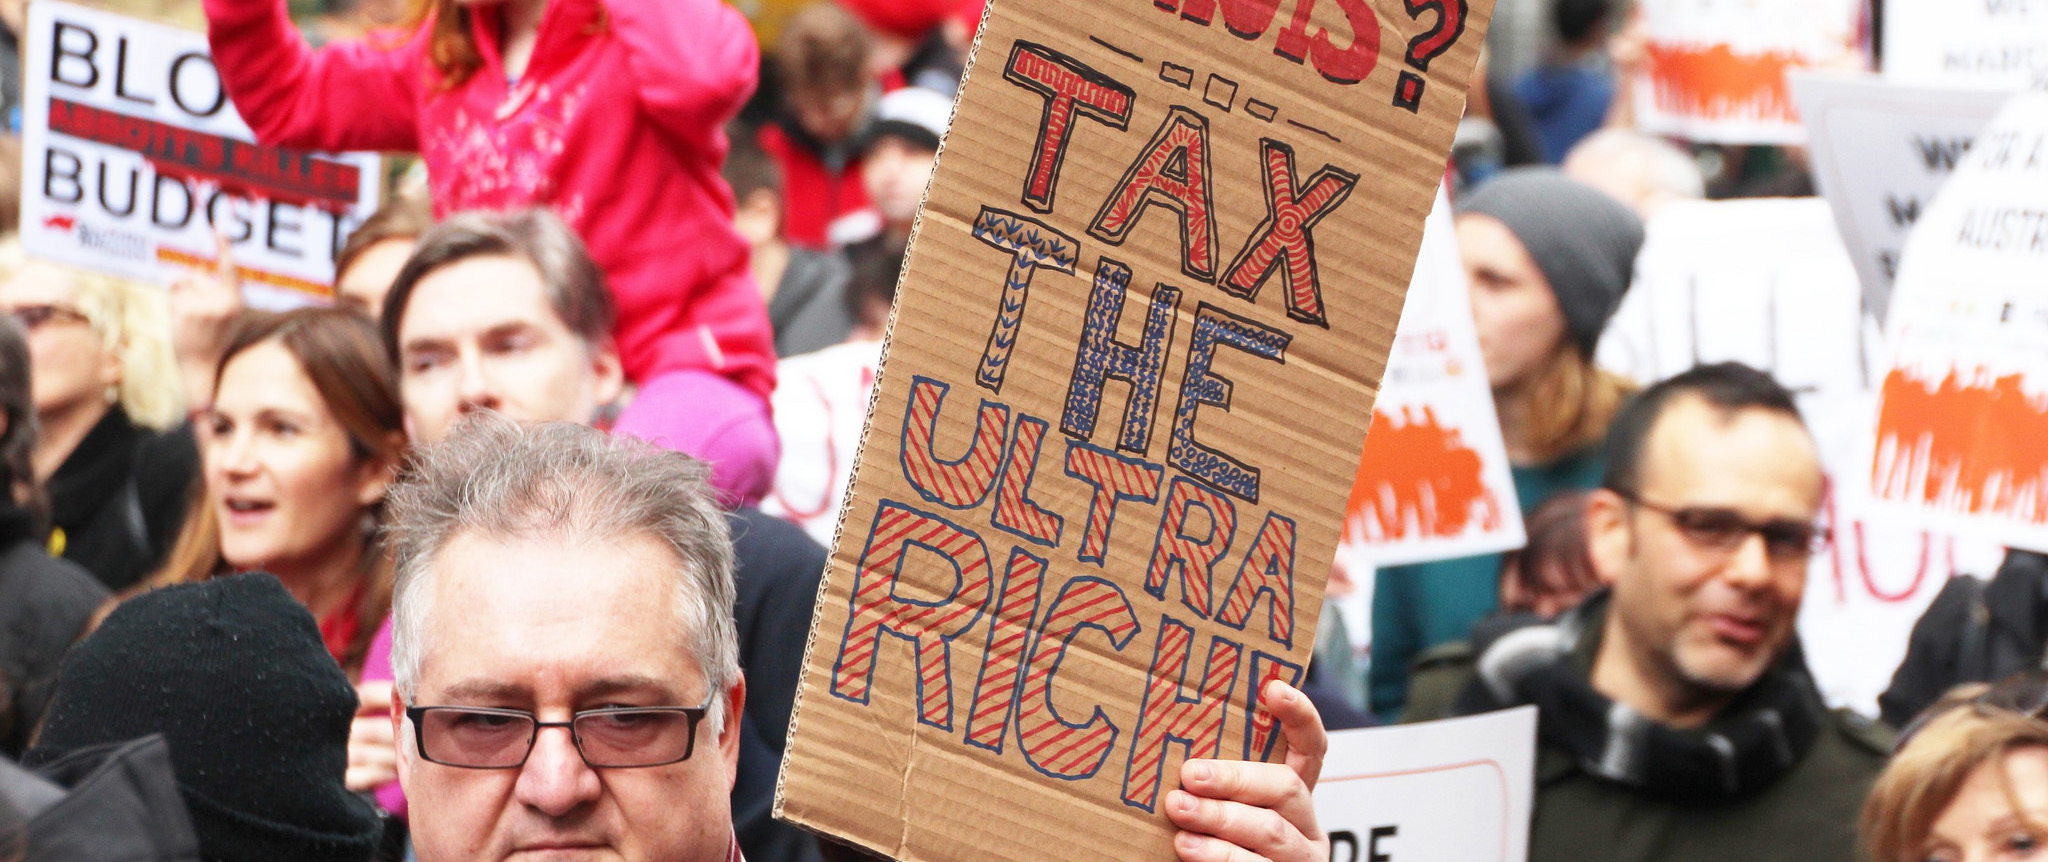 Progressives look to bring CT's tax fairness debate to the grassroots level